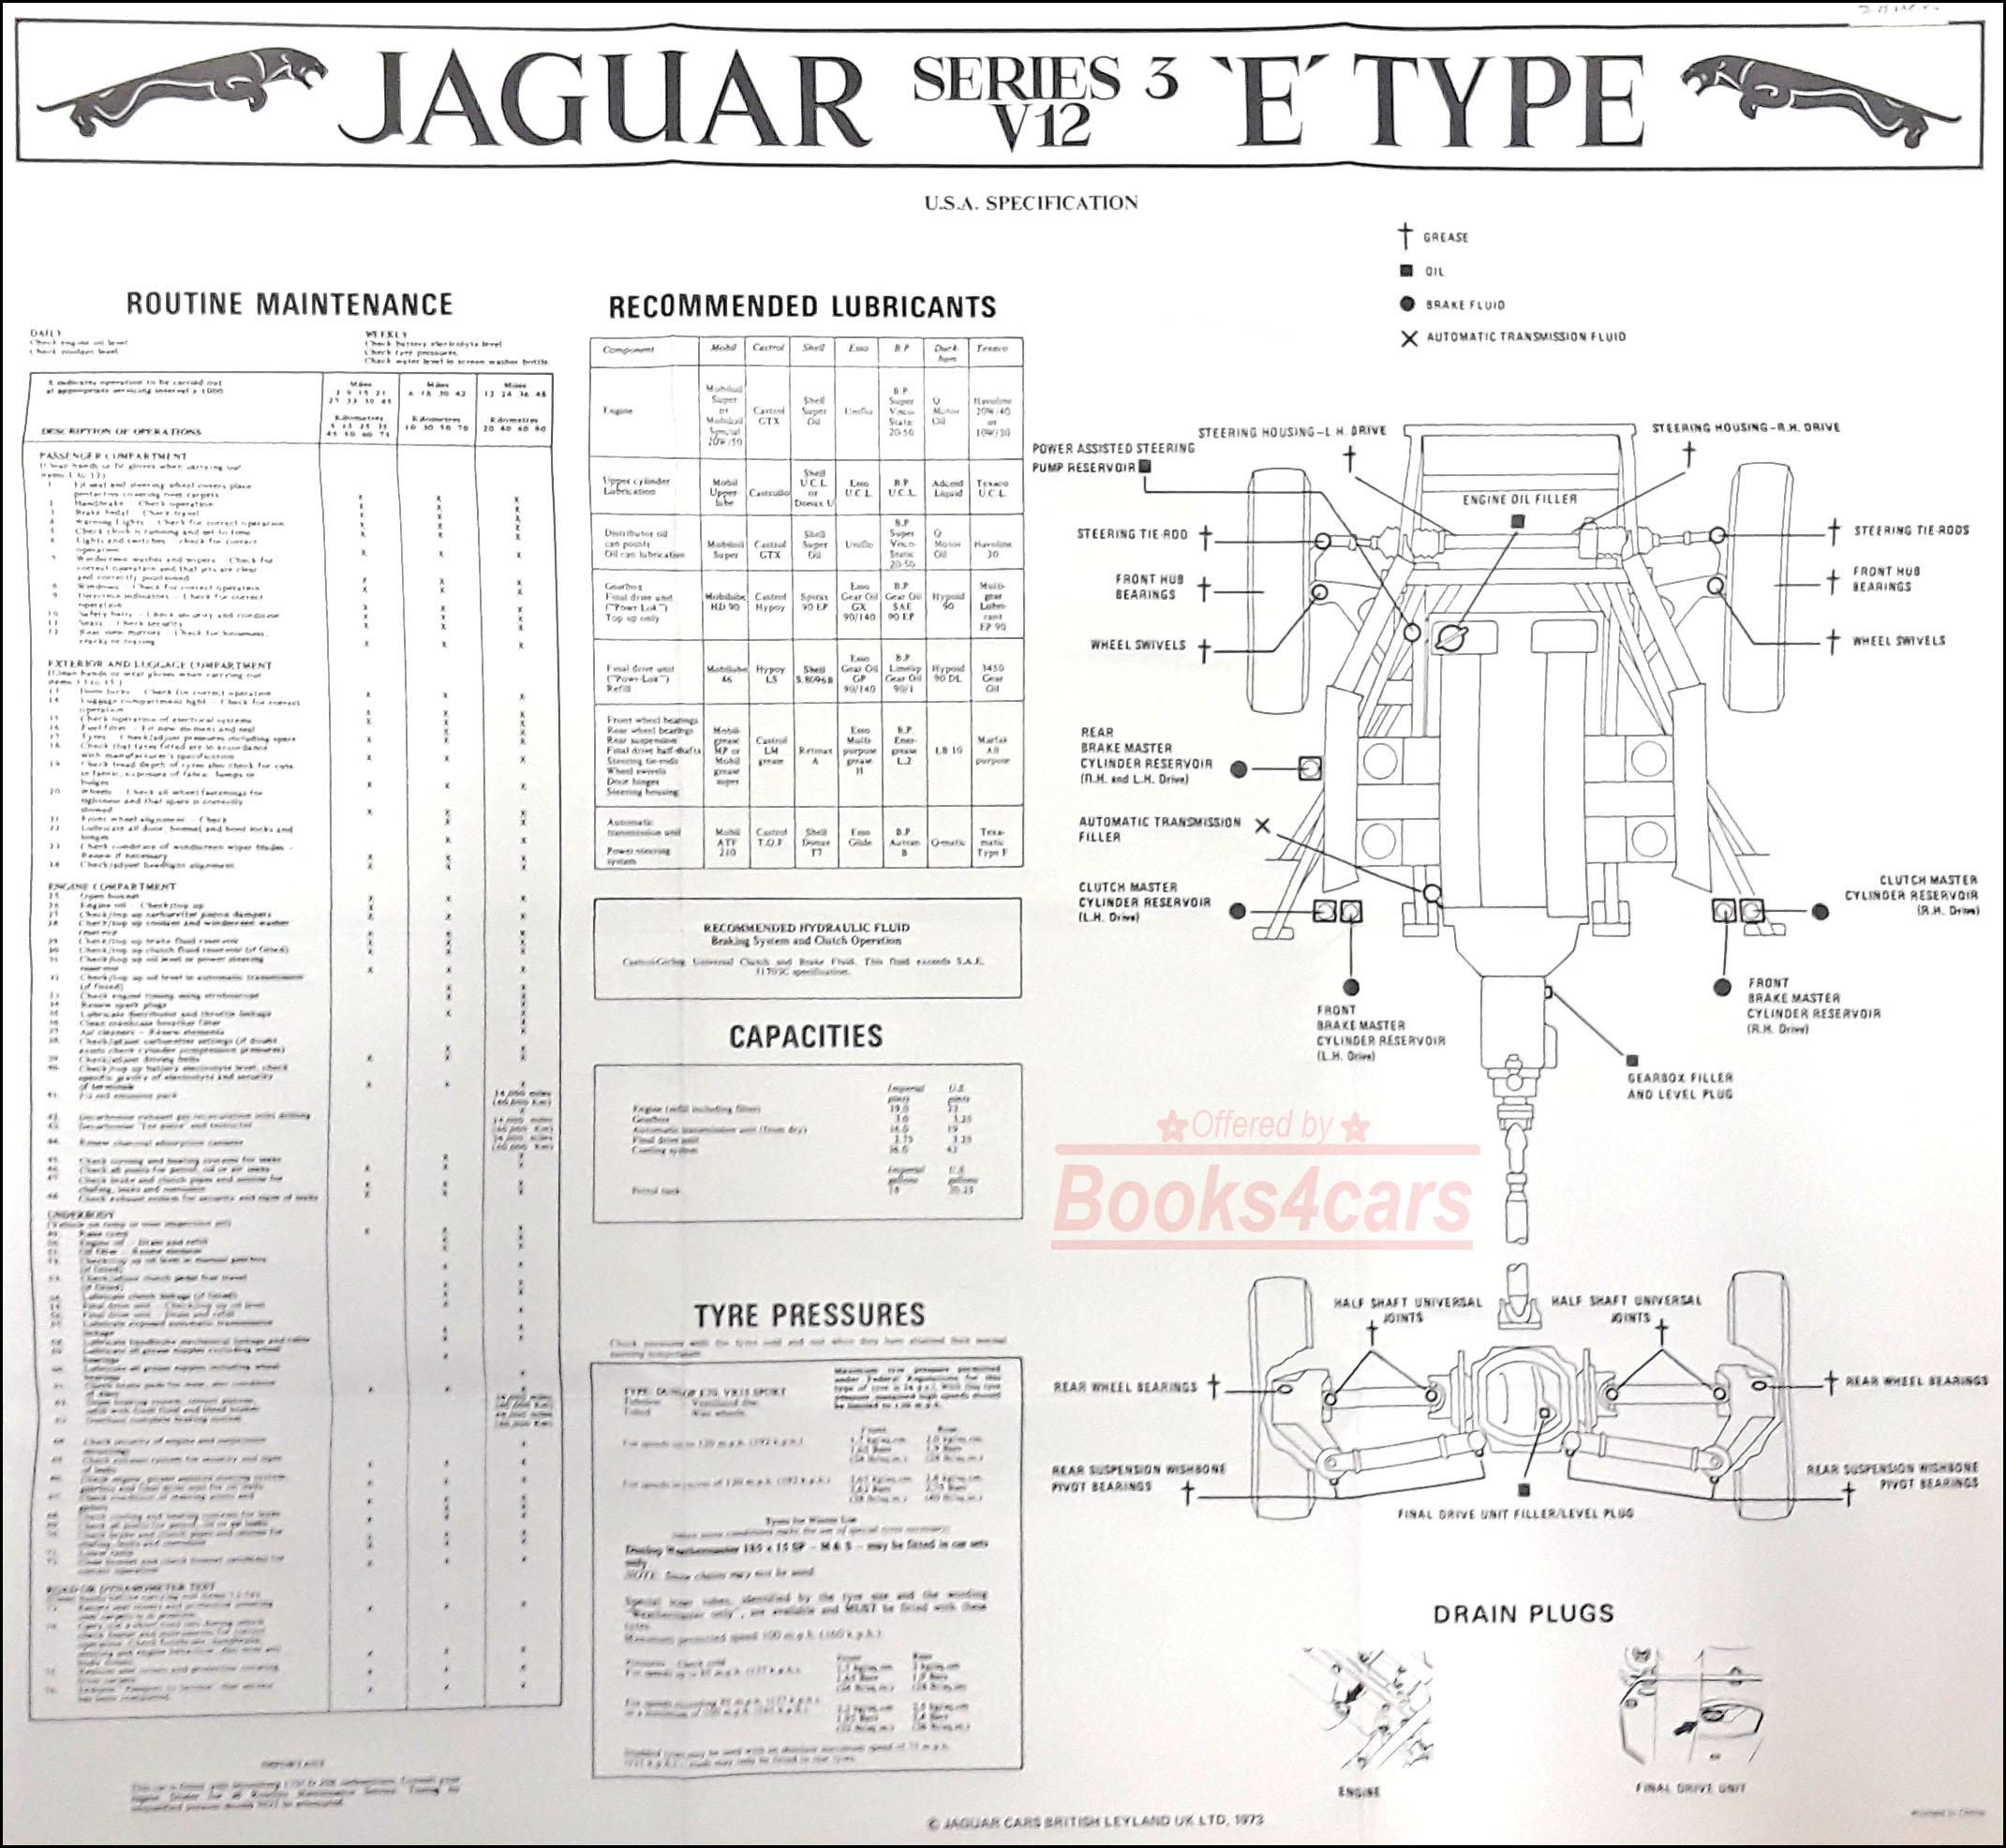 Wiring Diagram 1956 Jaguar - Trusted Wiring Diagram •